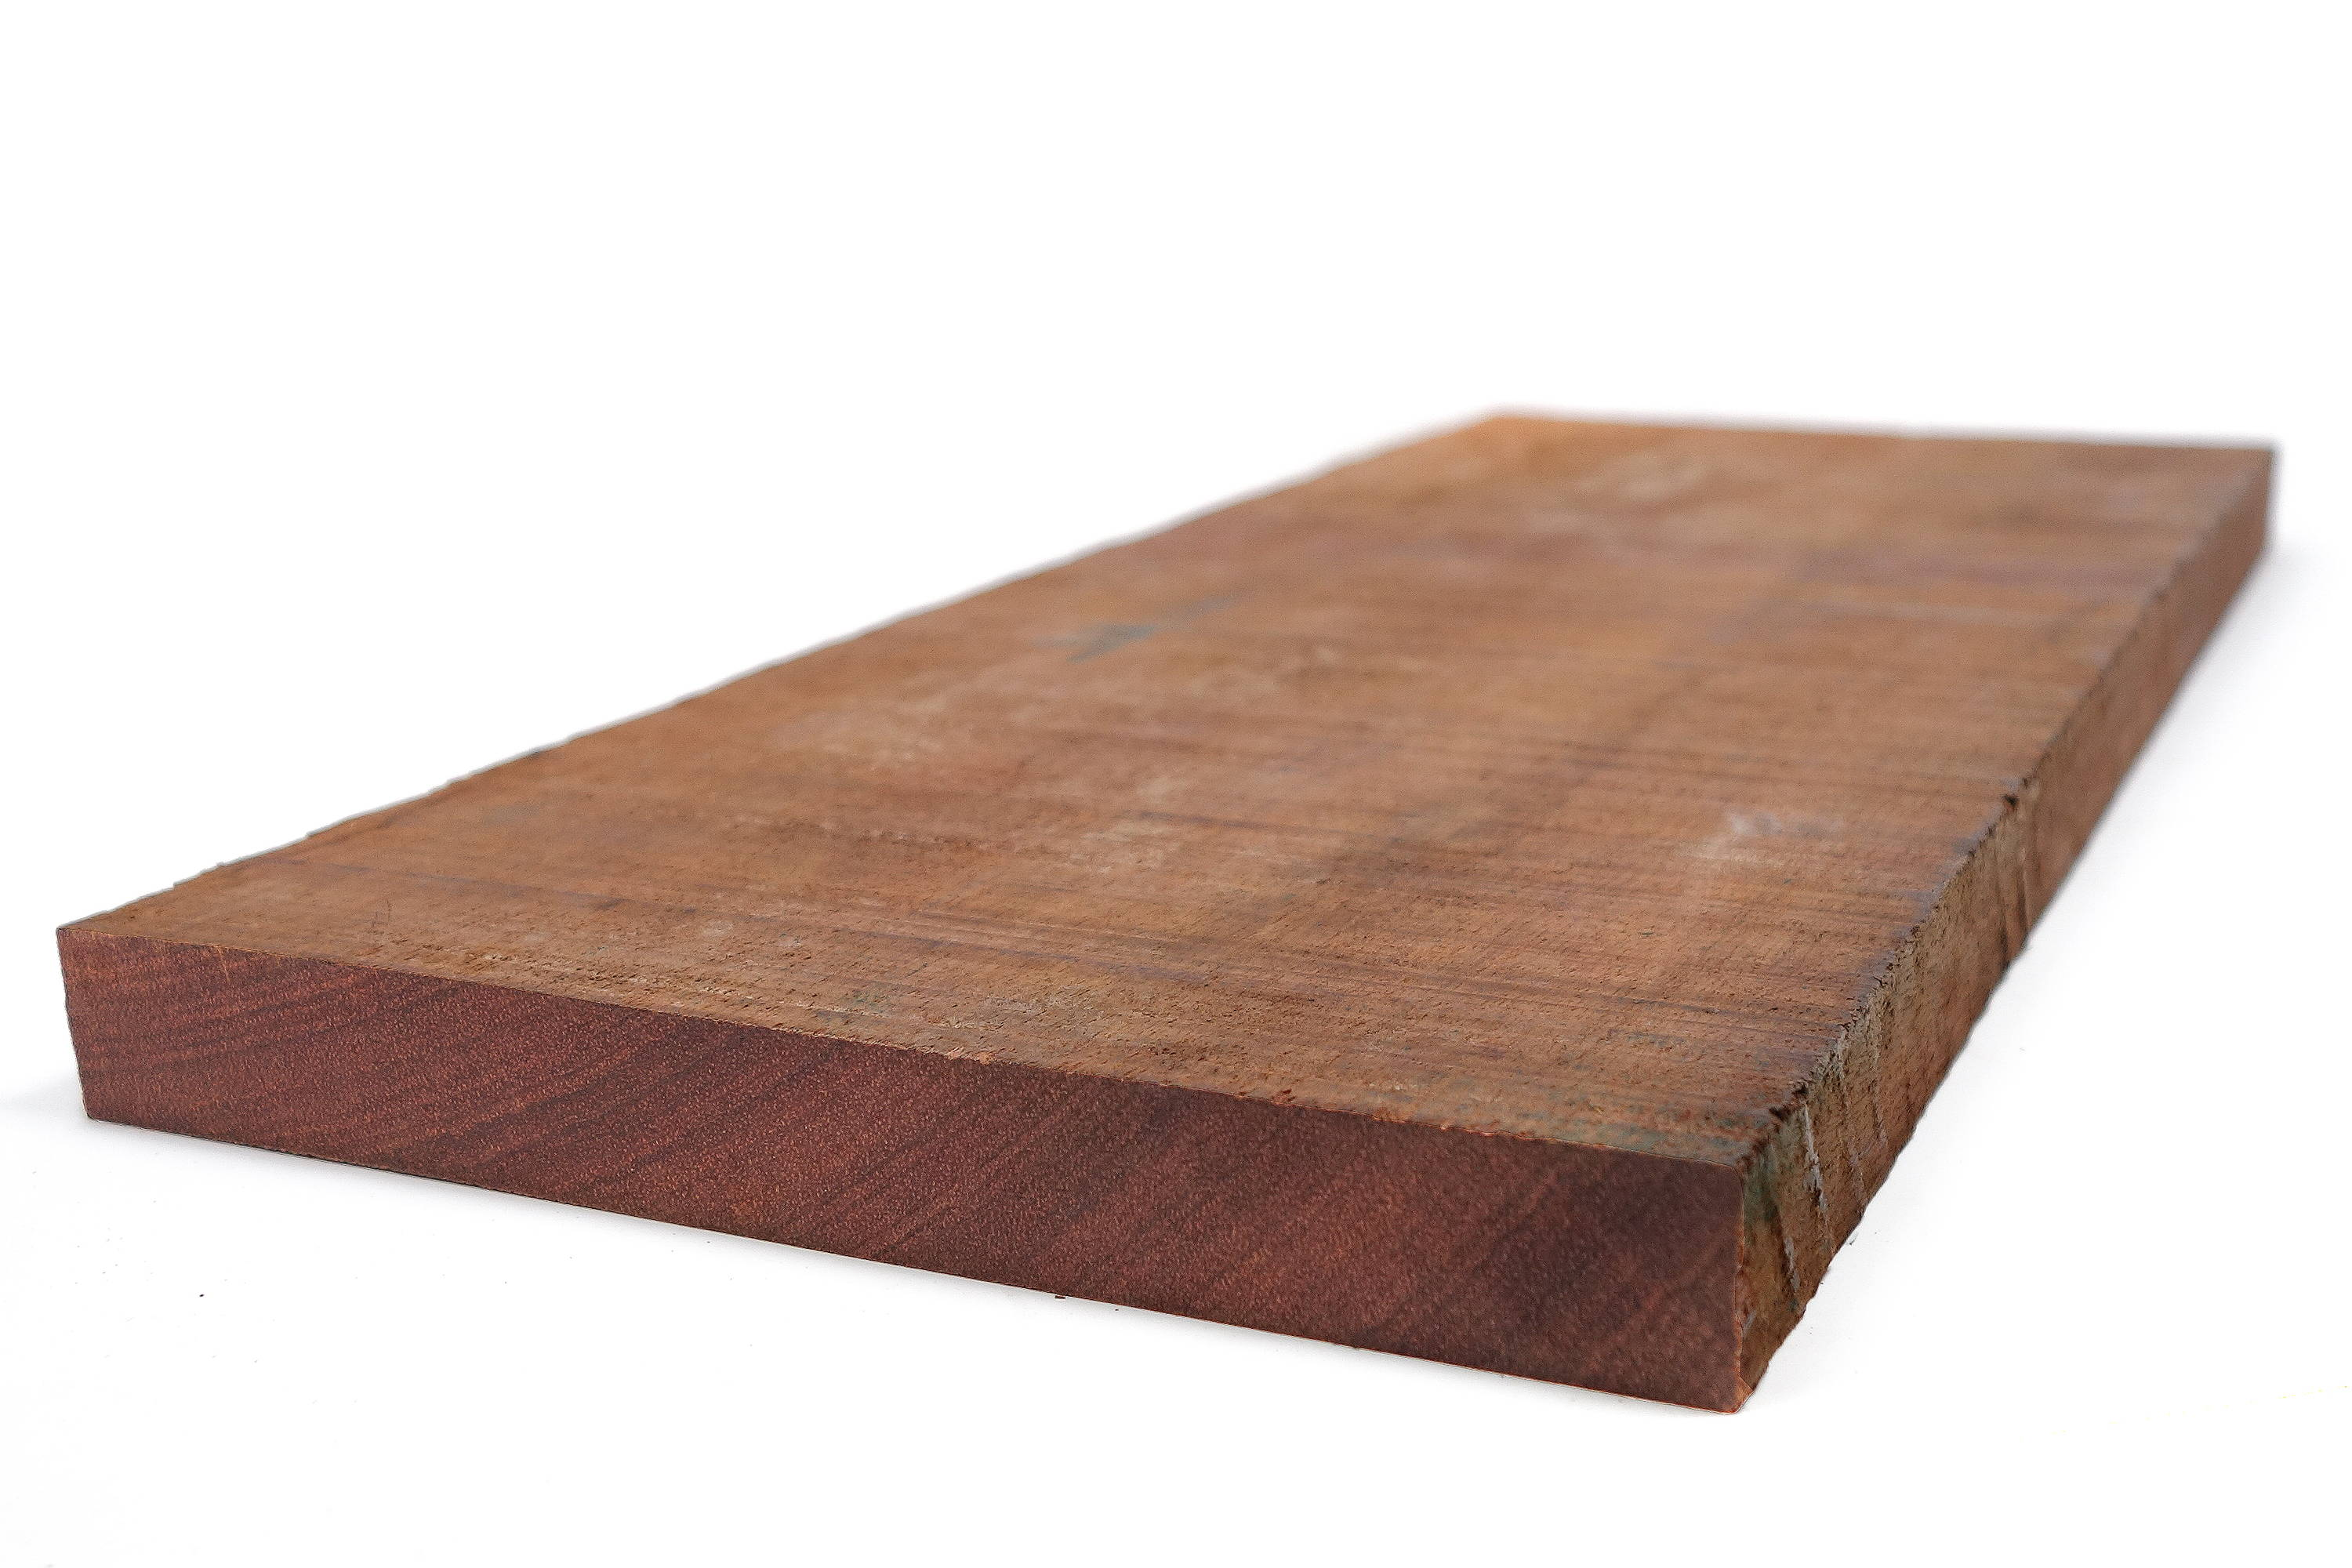 bloodwood 4/4 board cut